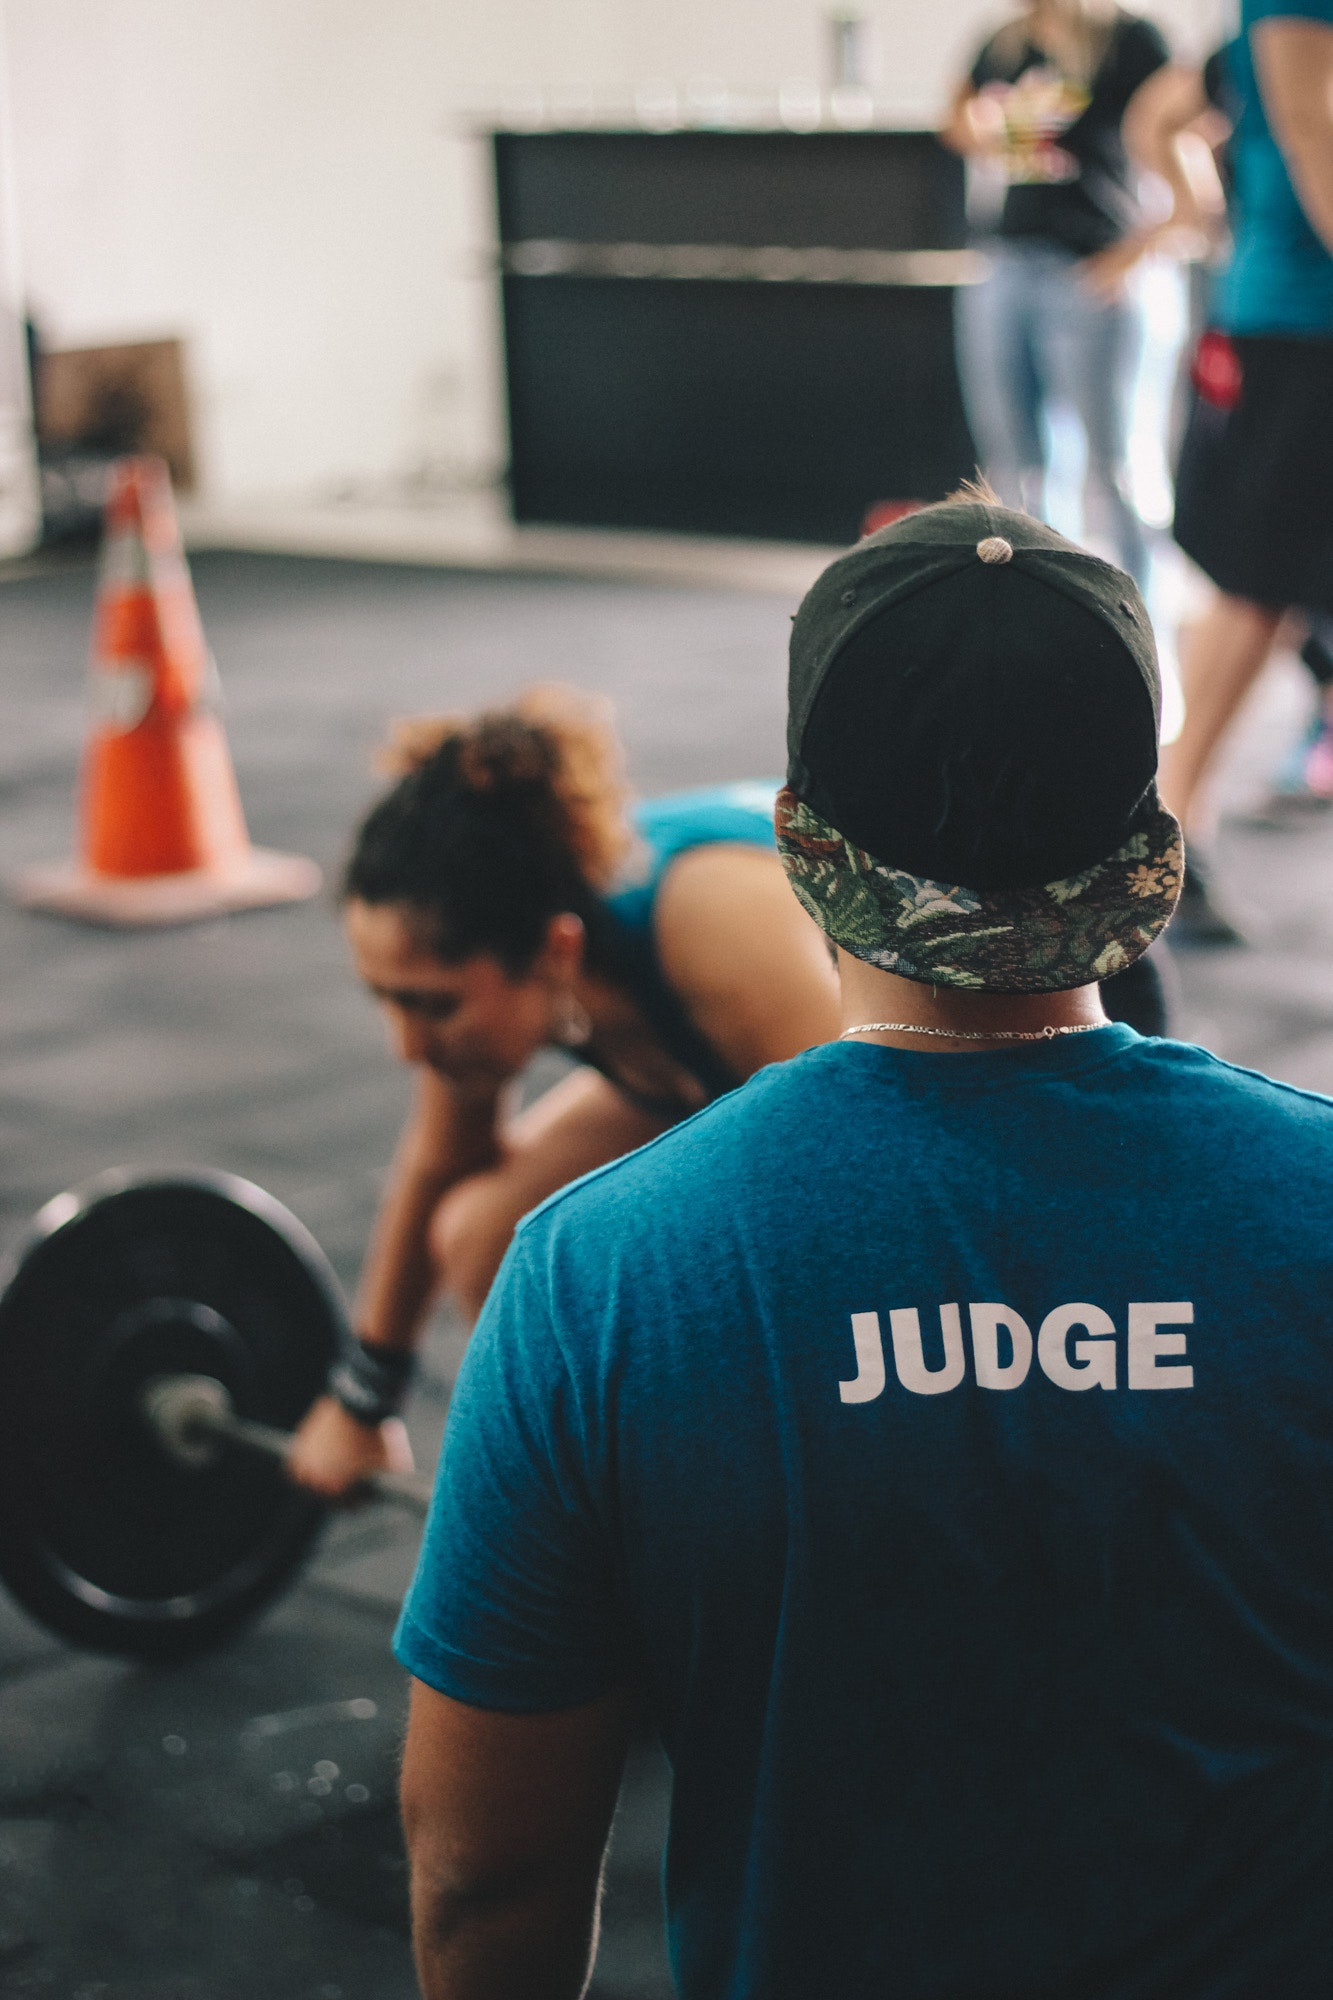 Man in Blue Crew-neck Shirt Staring At Woman Trying To Lift Barbell, Action, Athlete, Crossfit, Exercise, HQ Photo